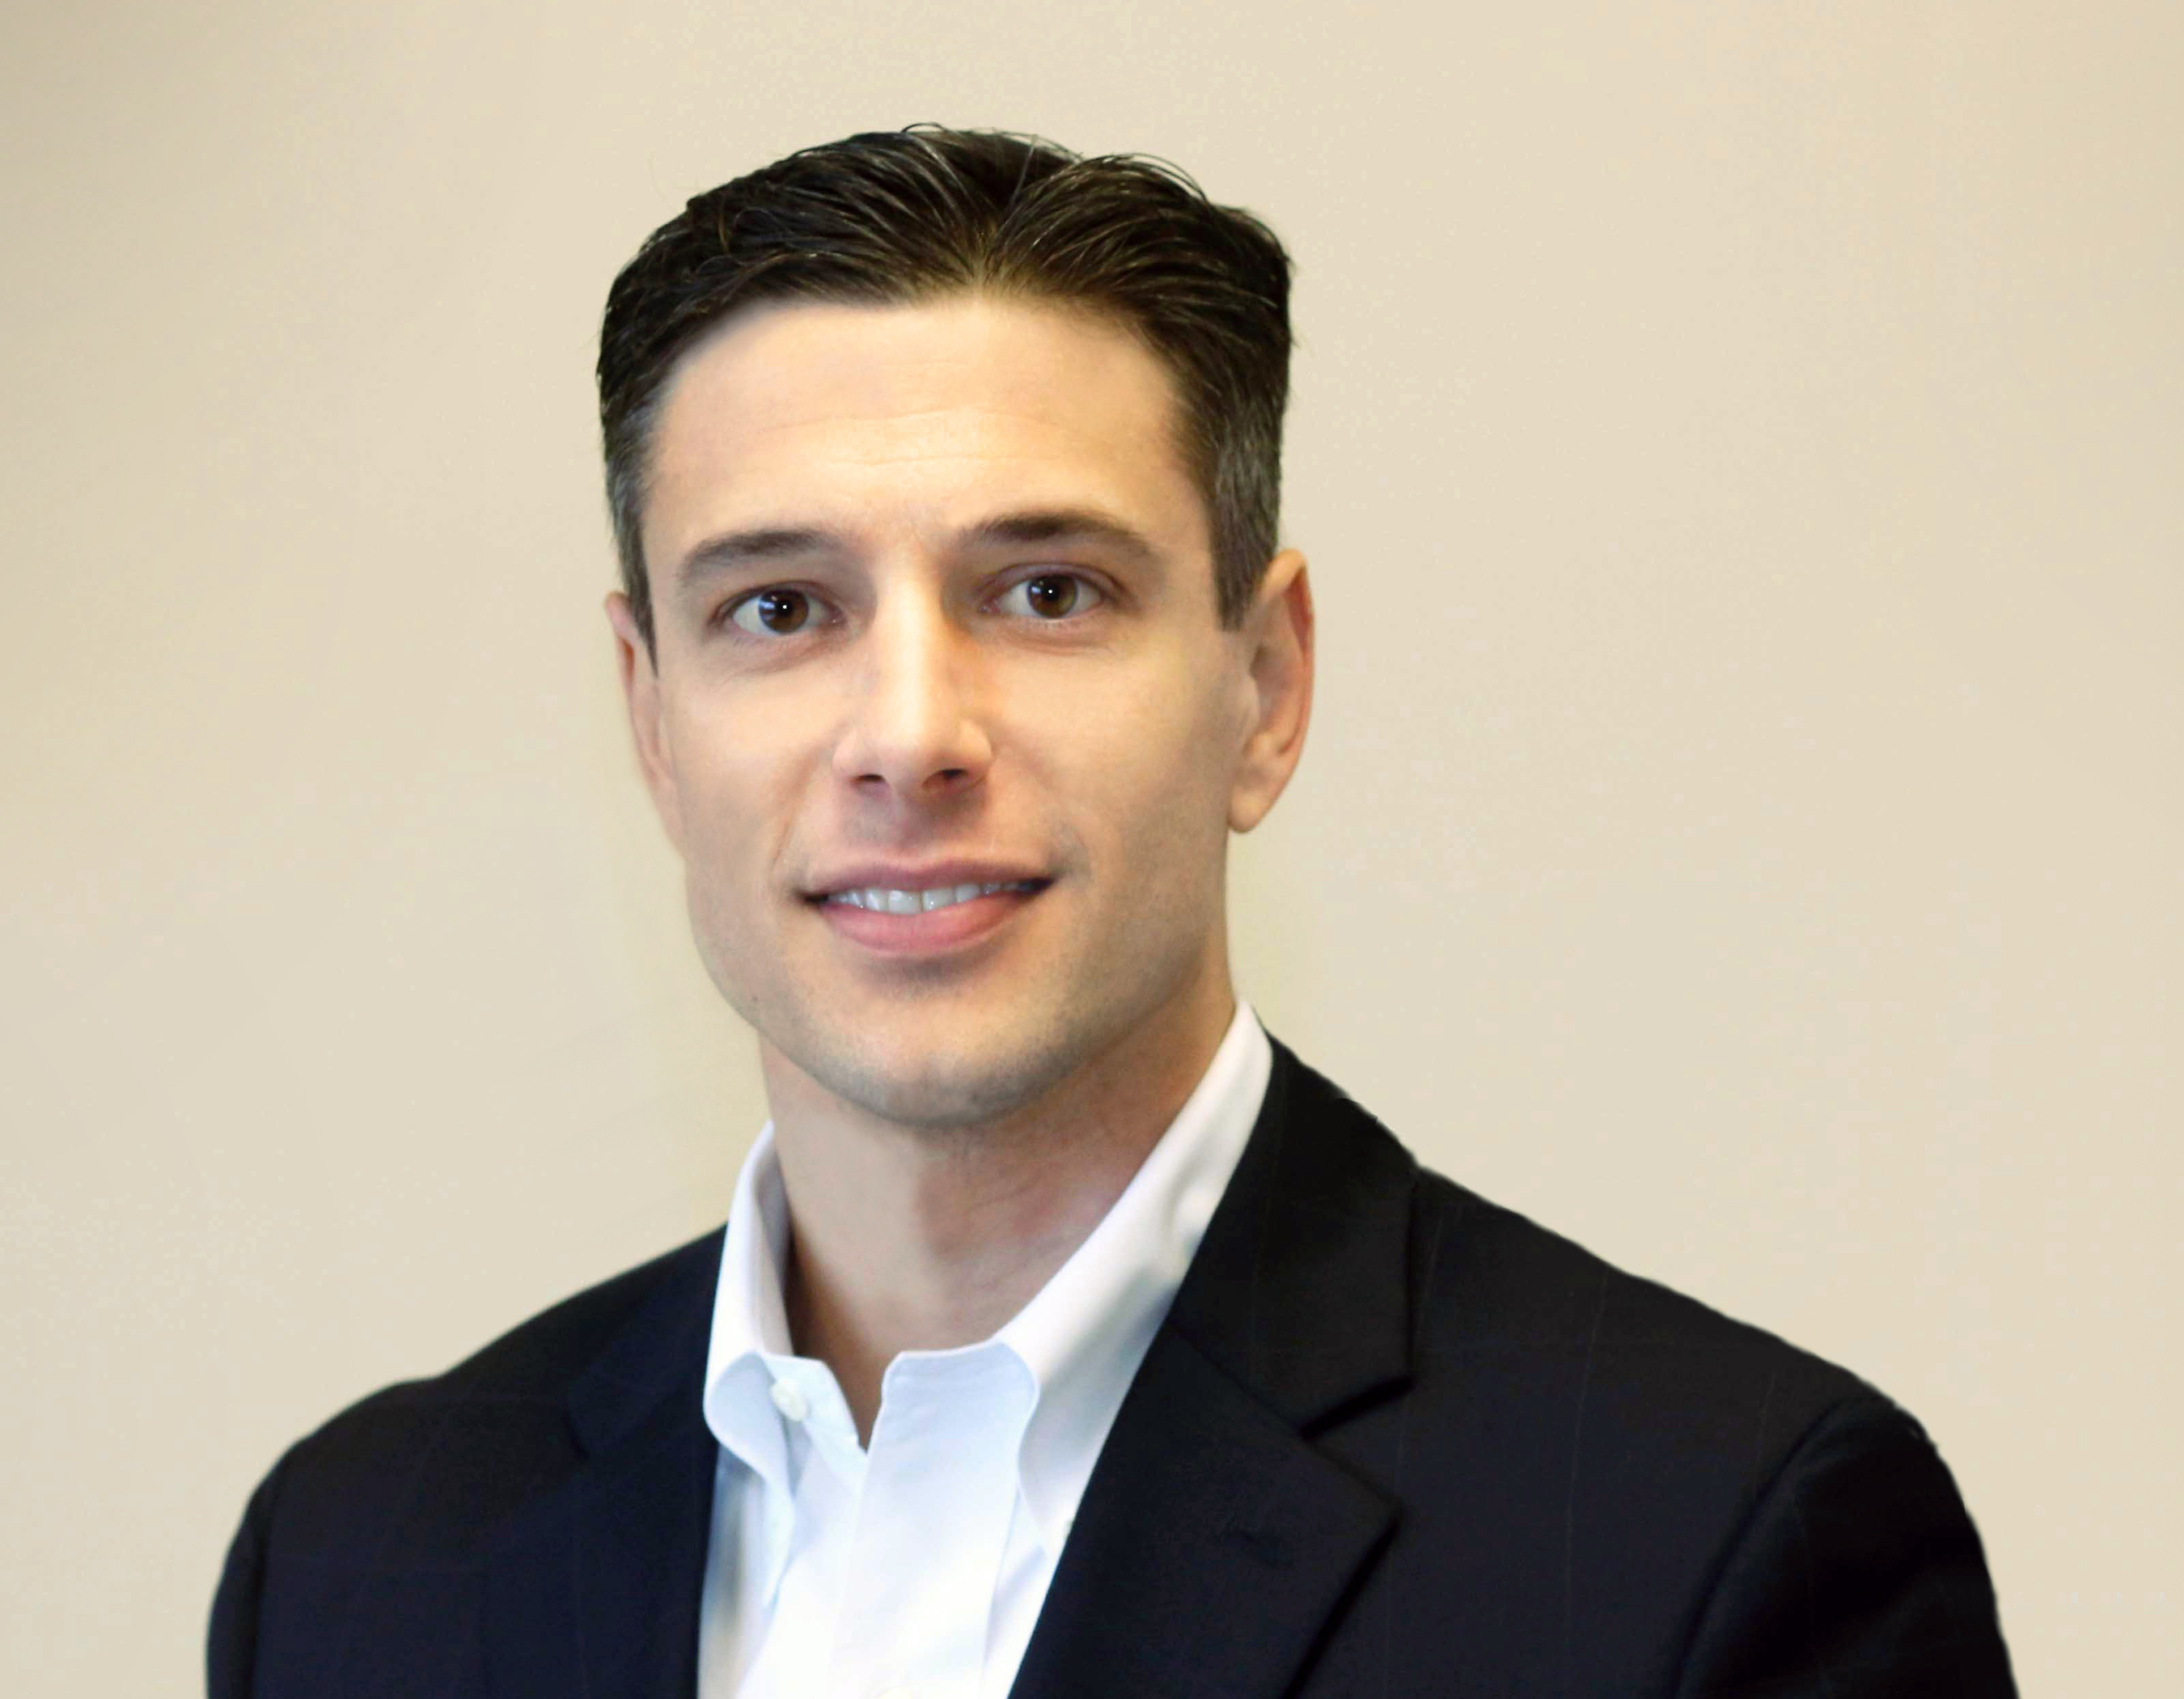 Kurt Angstadt, financial advisor Chadds Ford PA